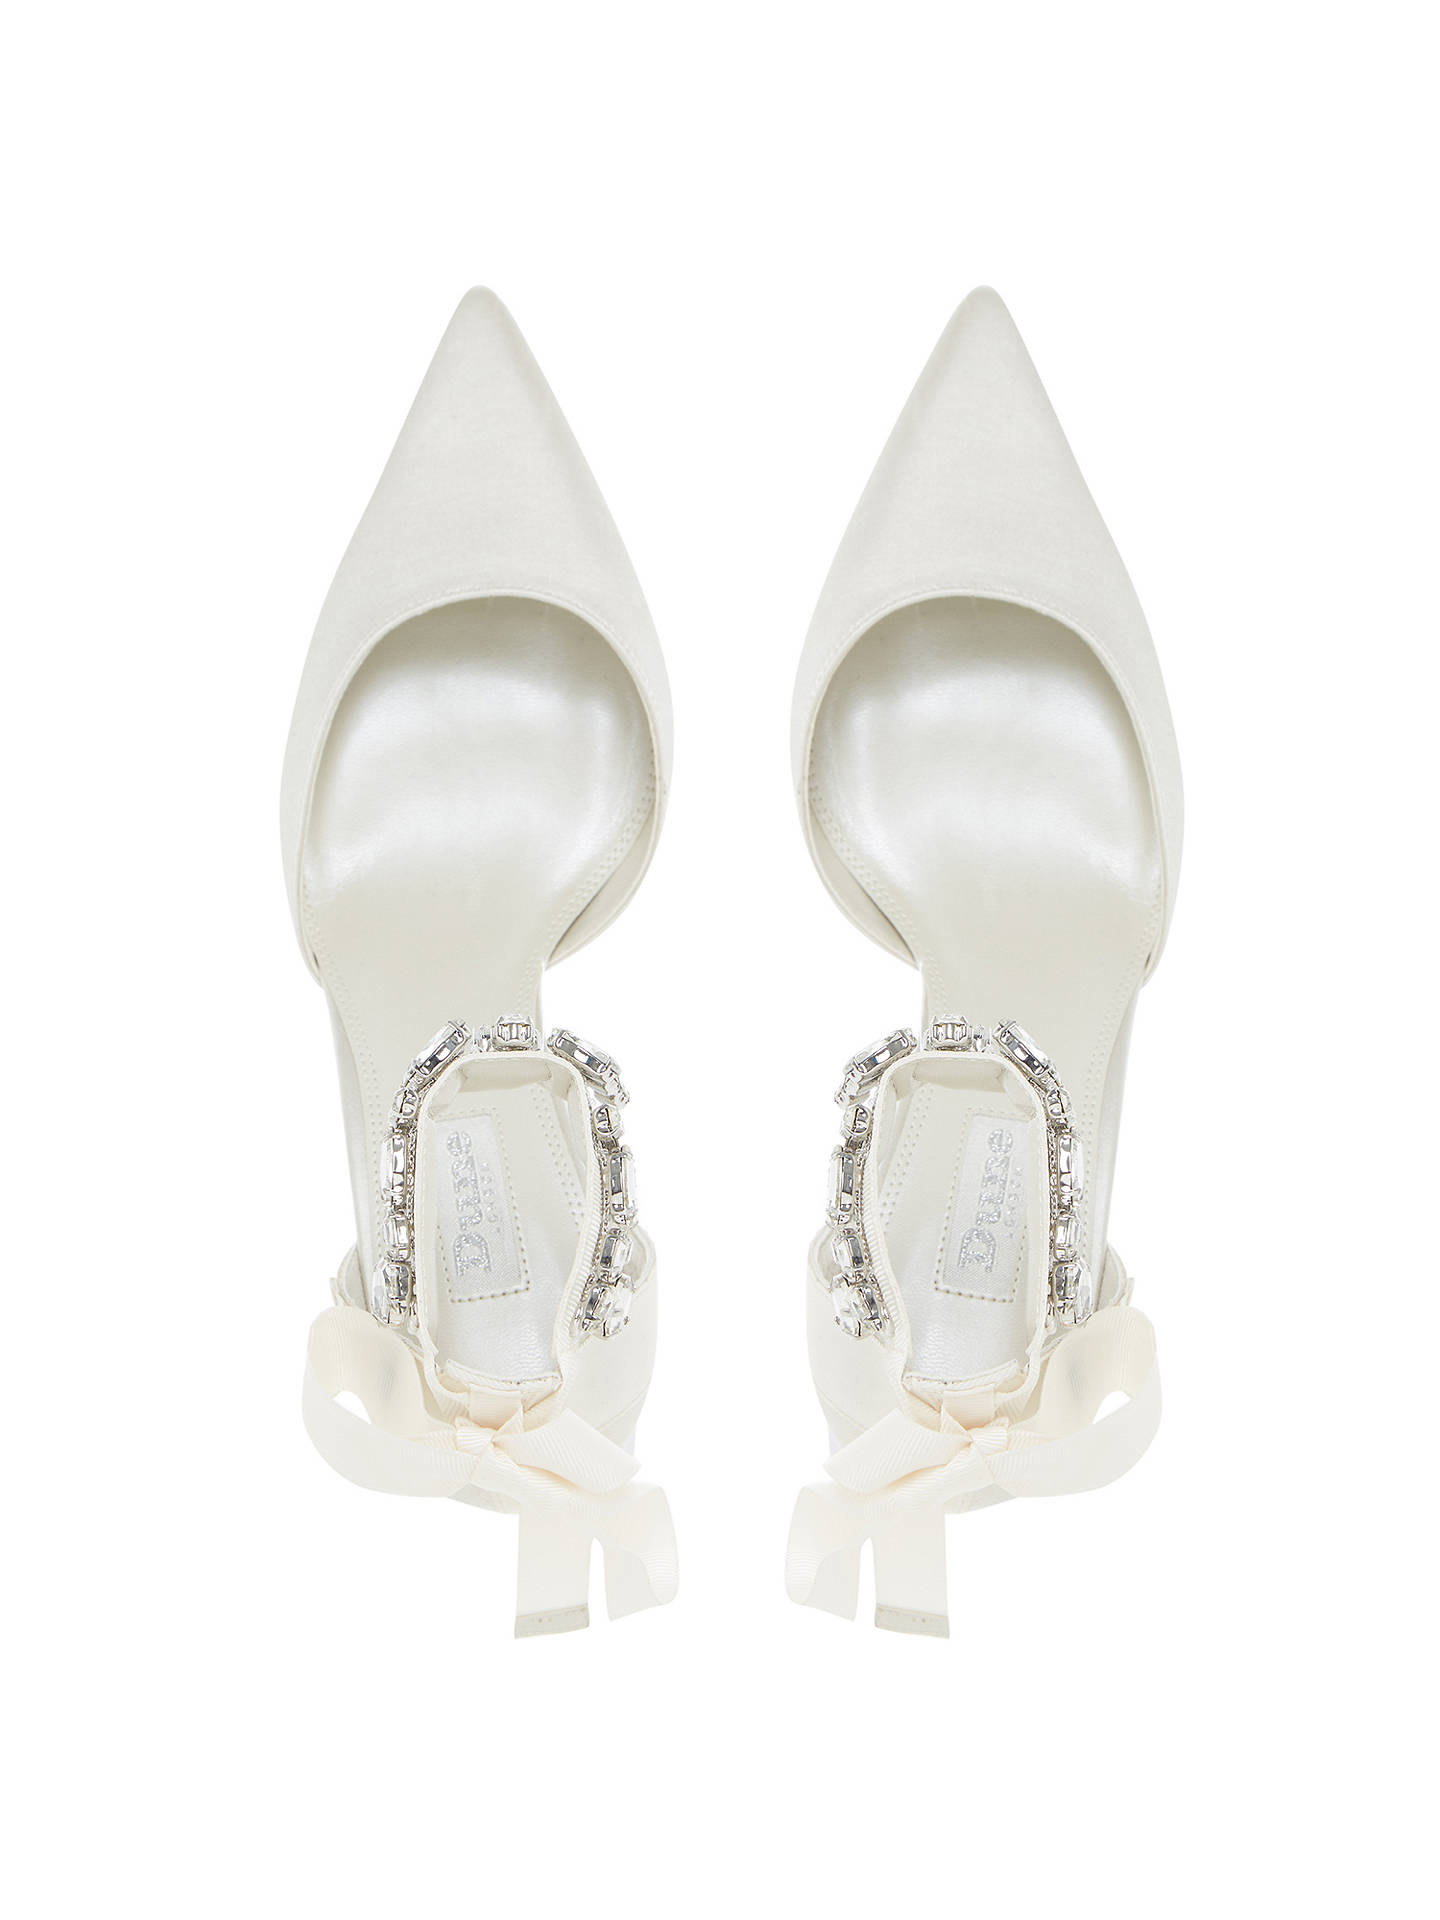 BuyDune Bridal Collection Diamond Embellished Pointed Toe Court Shoes, Ivory, 5 Online at johnlewis.com